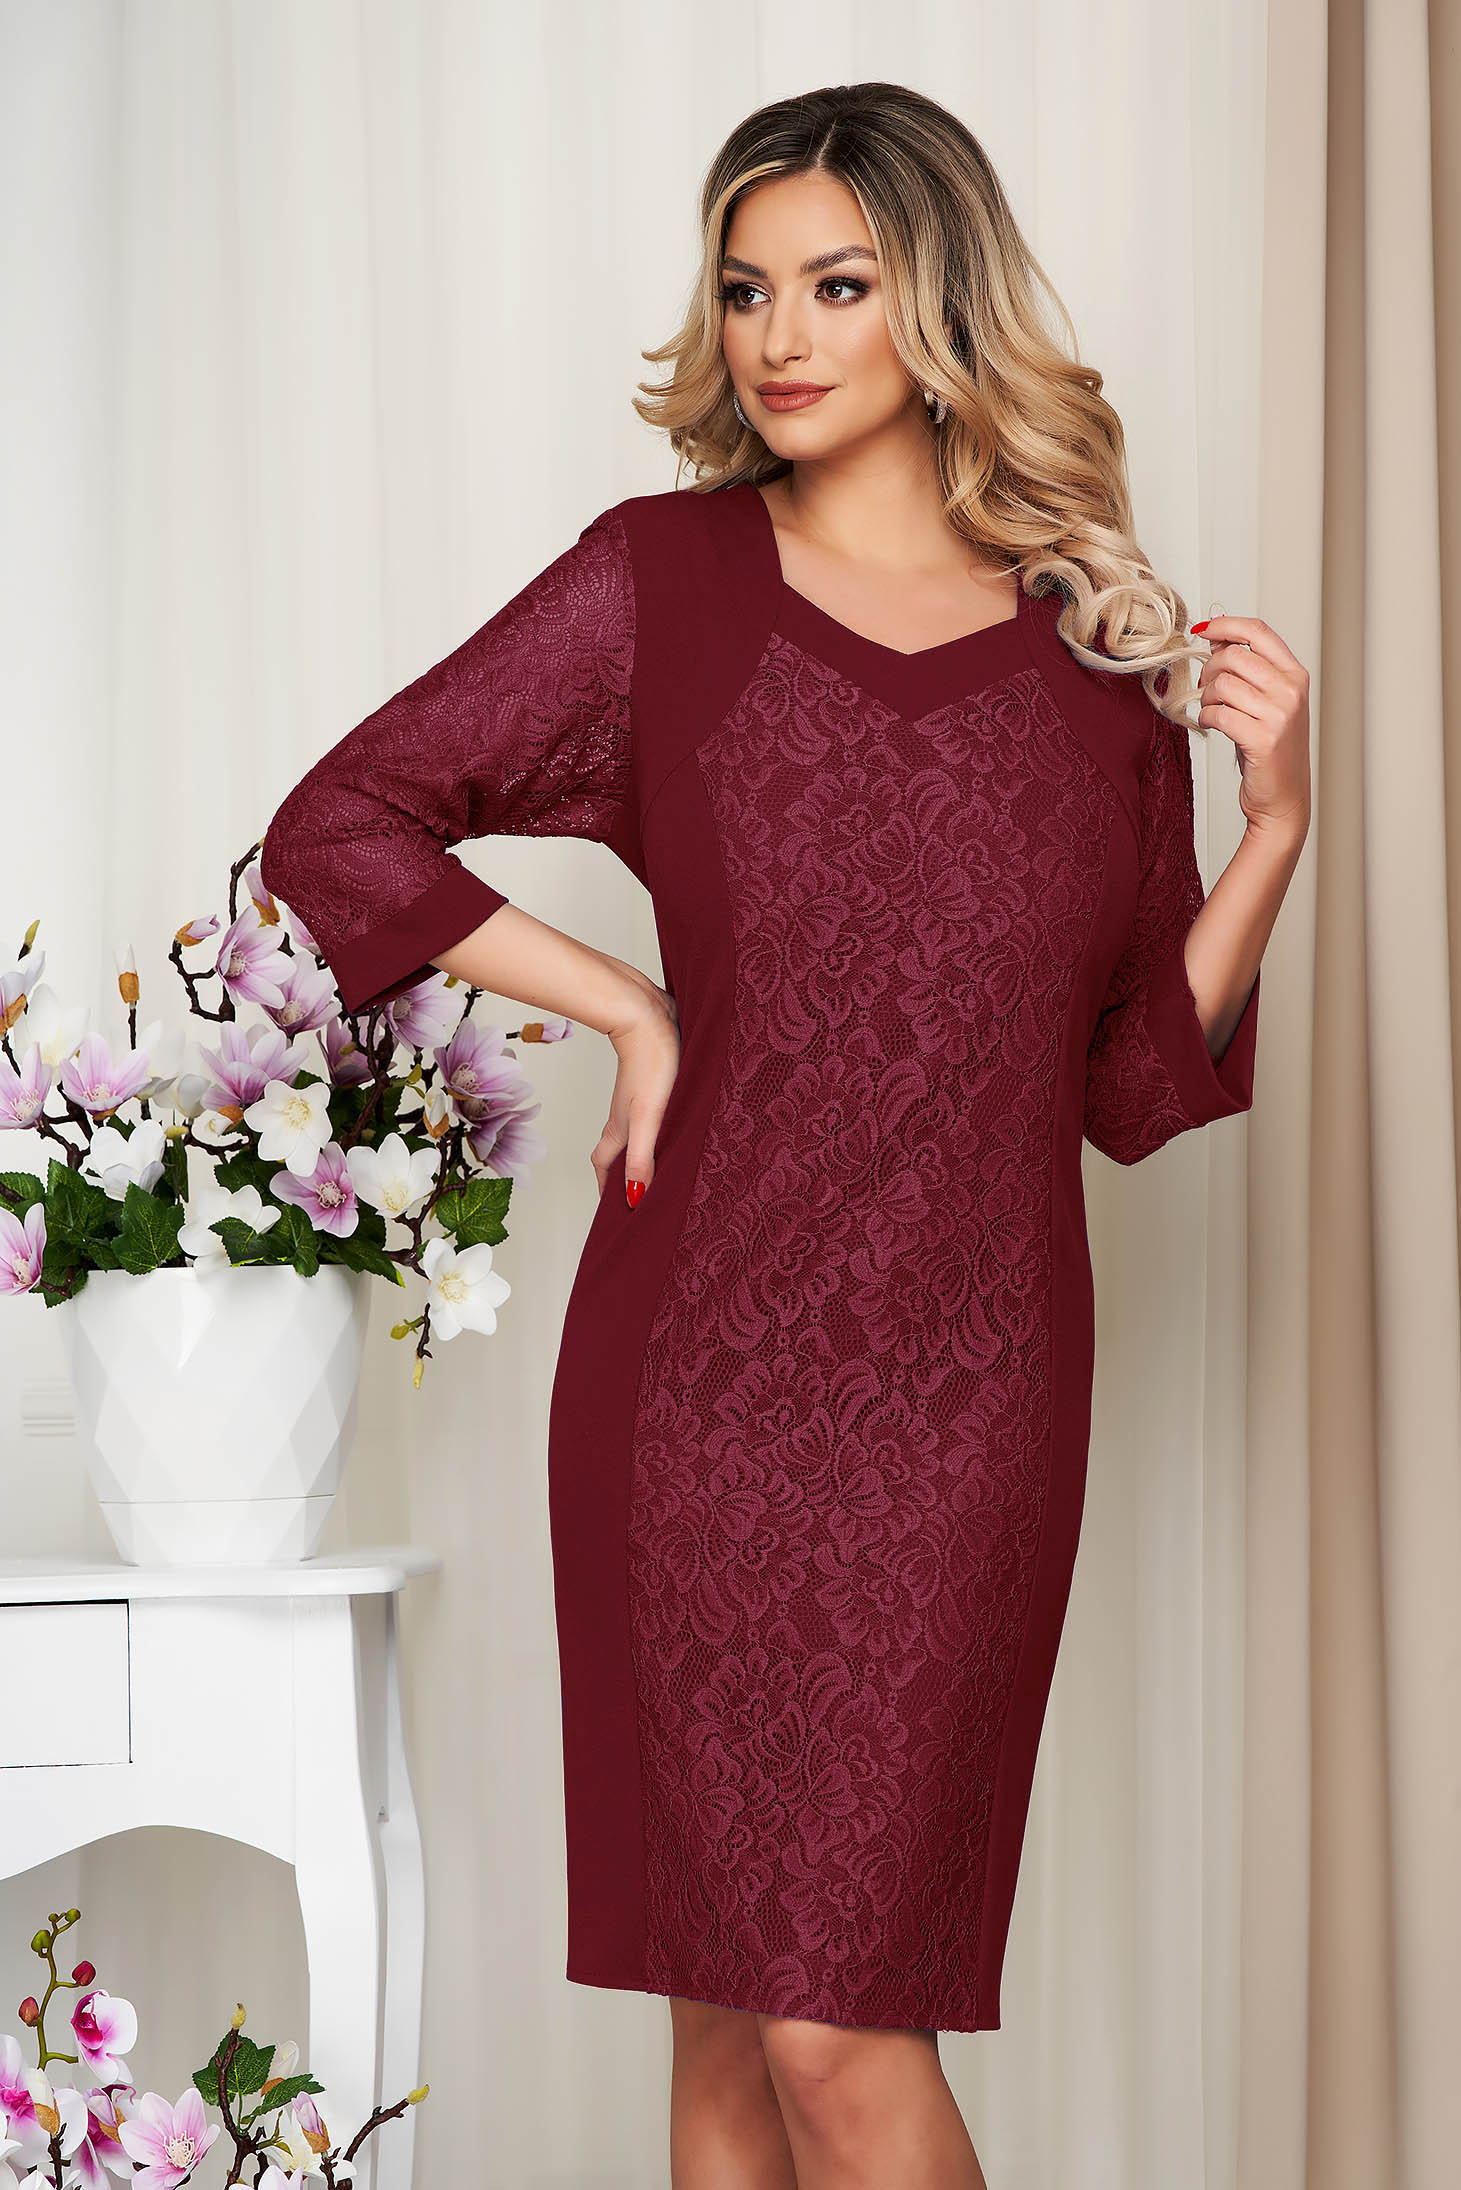 Burgundy dress pencil from elastic fabric with lace details